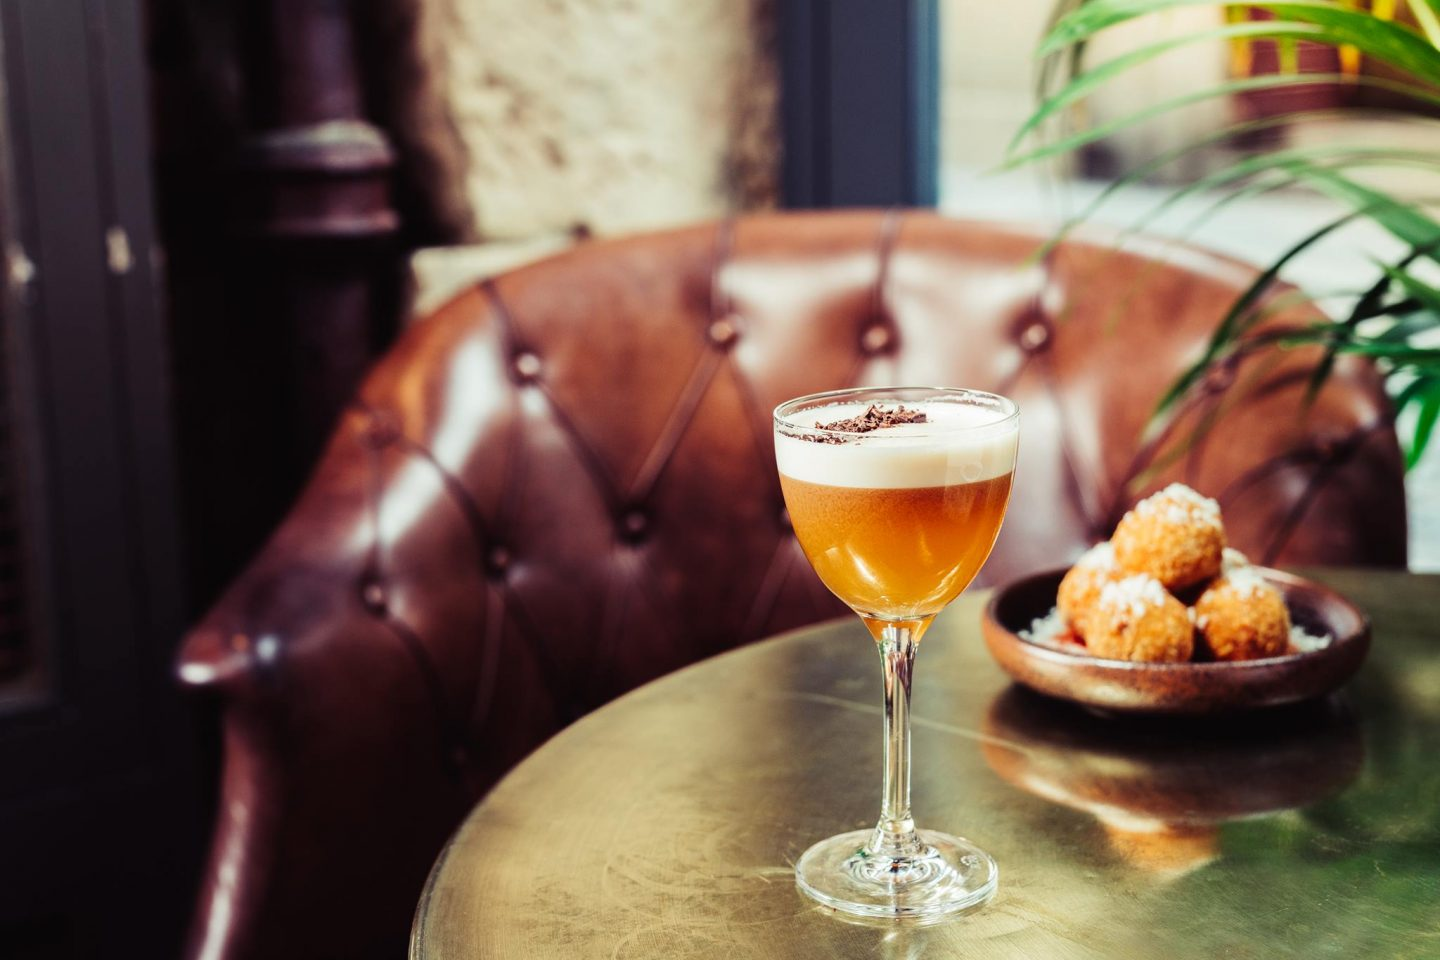 A Date With Rhubarb cocktail from Pleased To Meet You